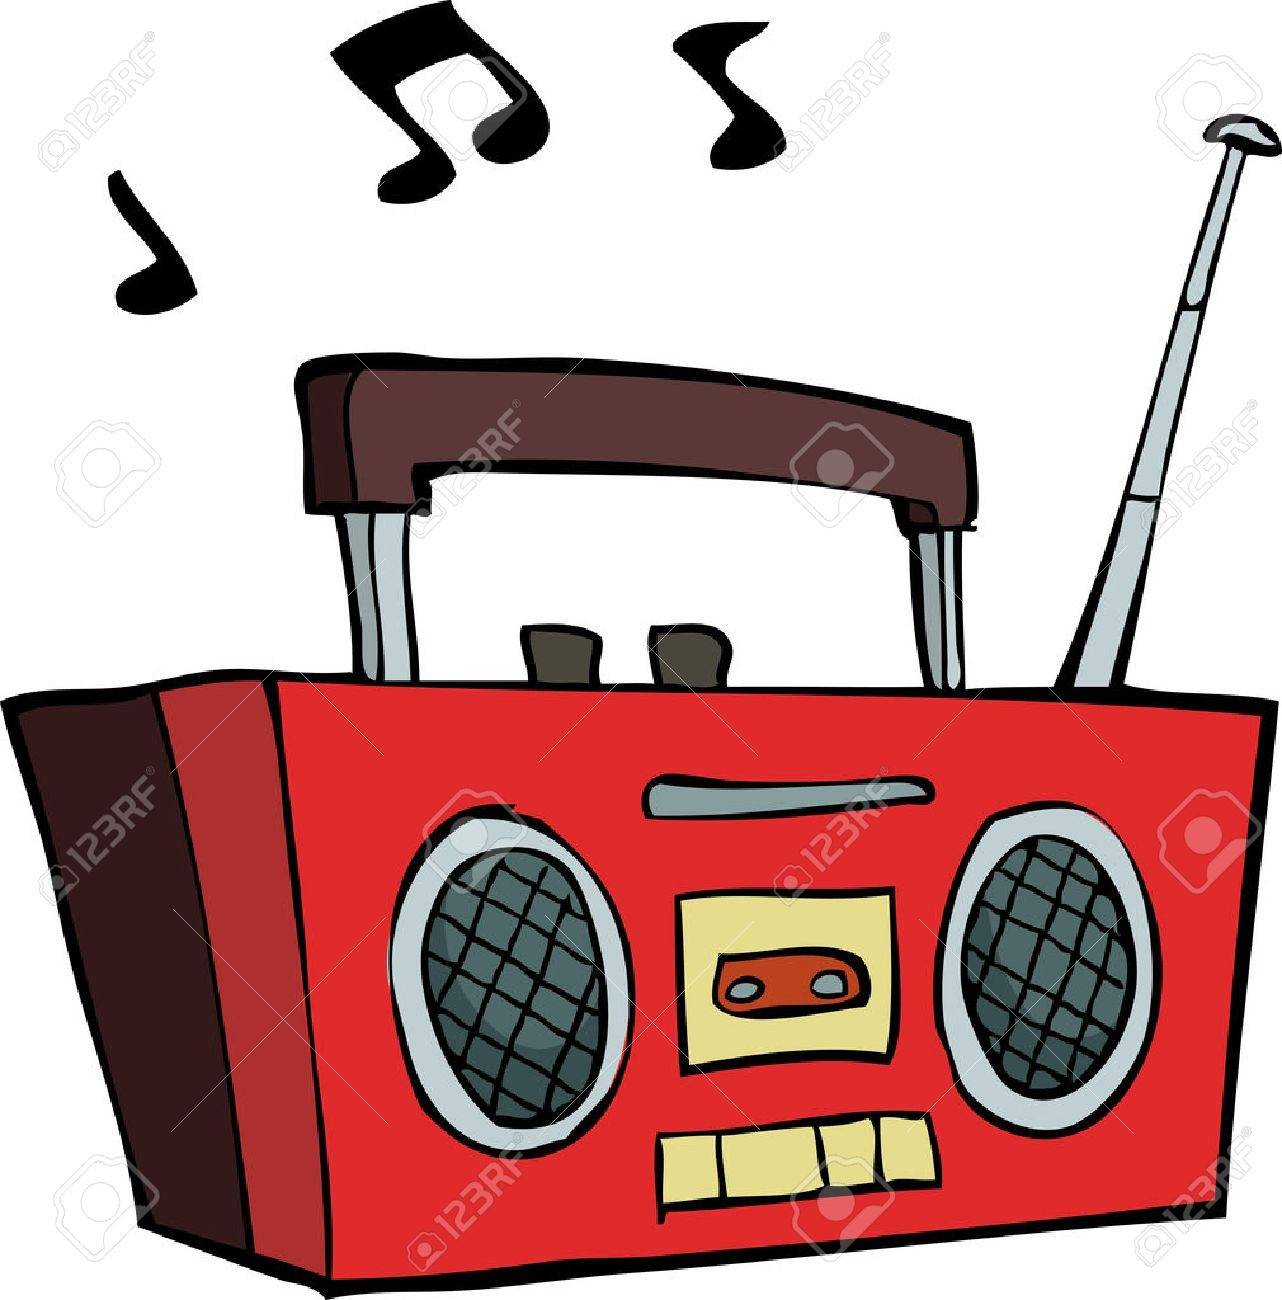 Best of radio gallery. Boombox clipart simple